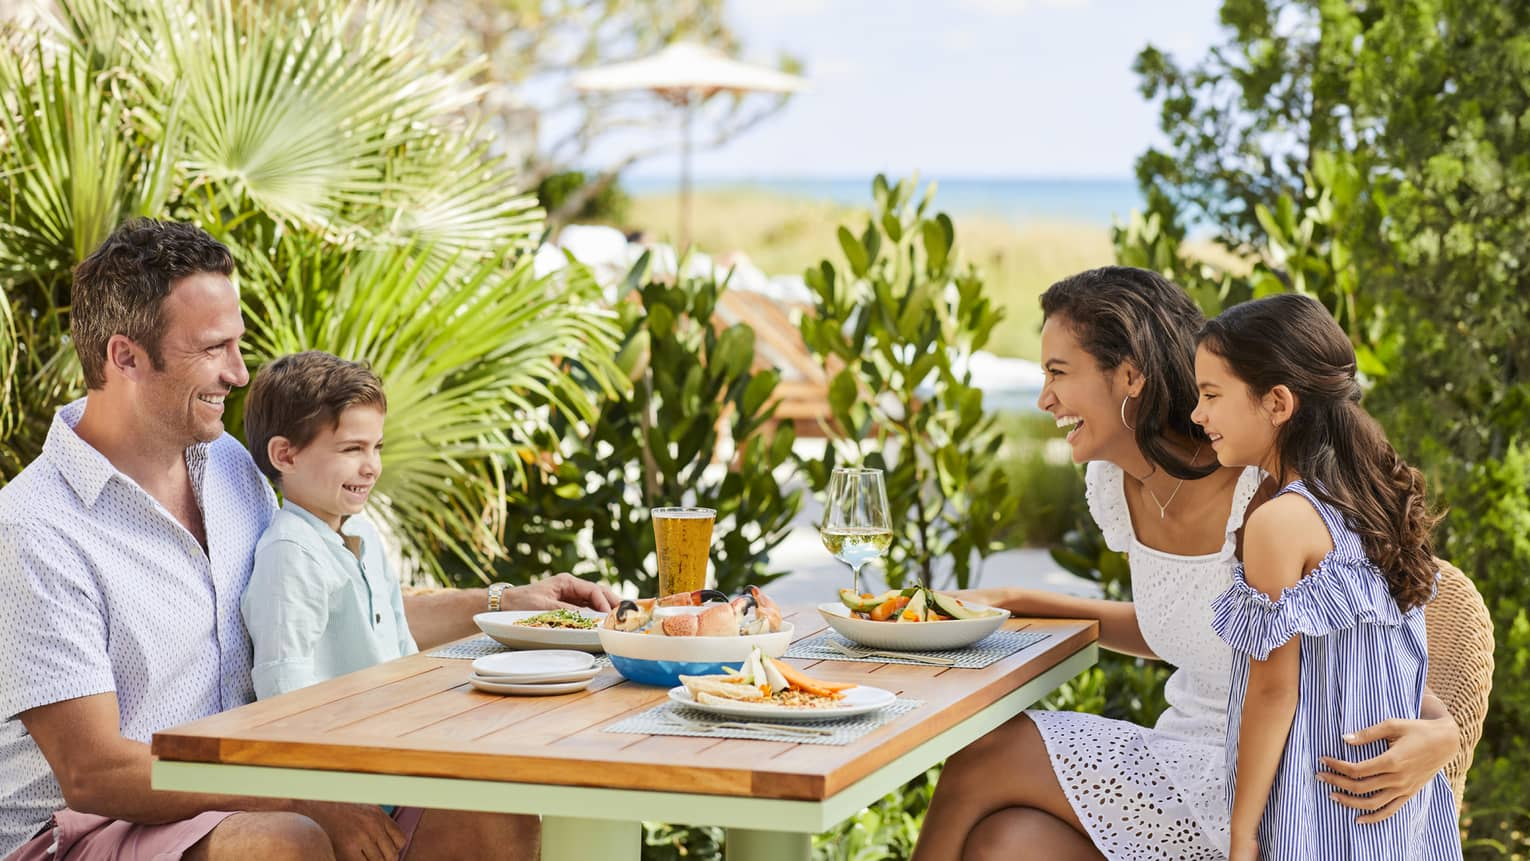 A family enjoys seafood and salad at a secluded outdoor table